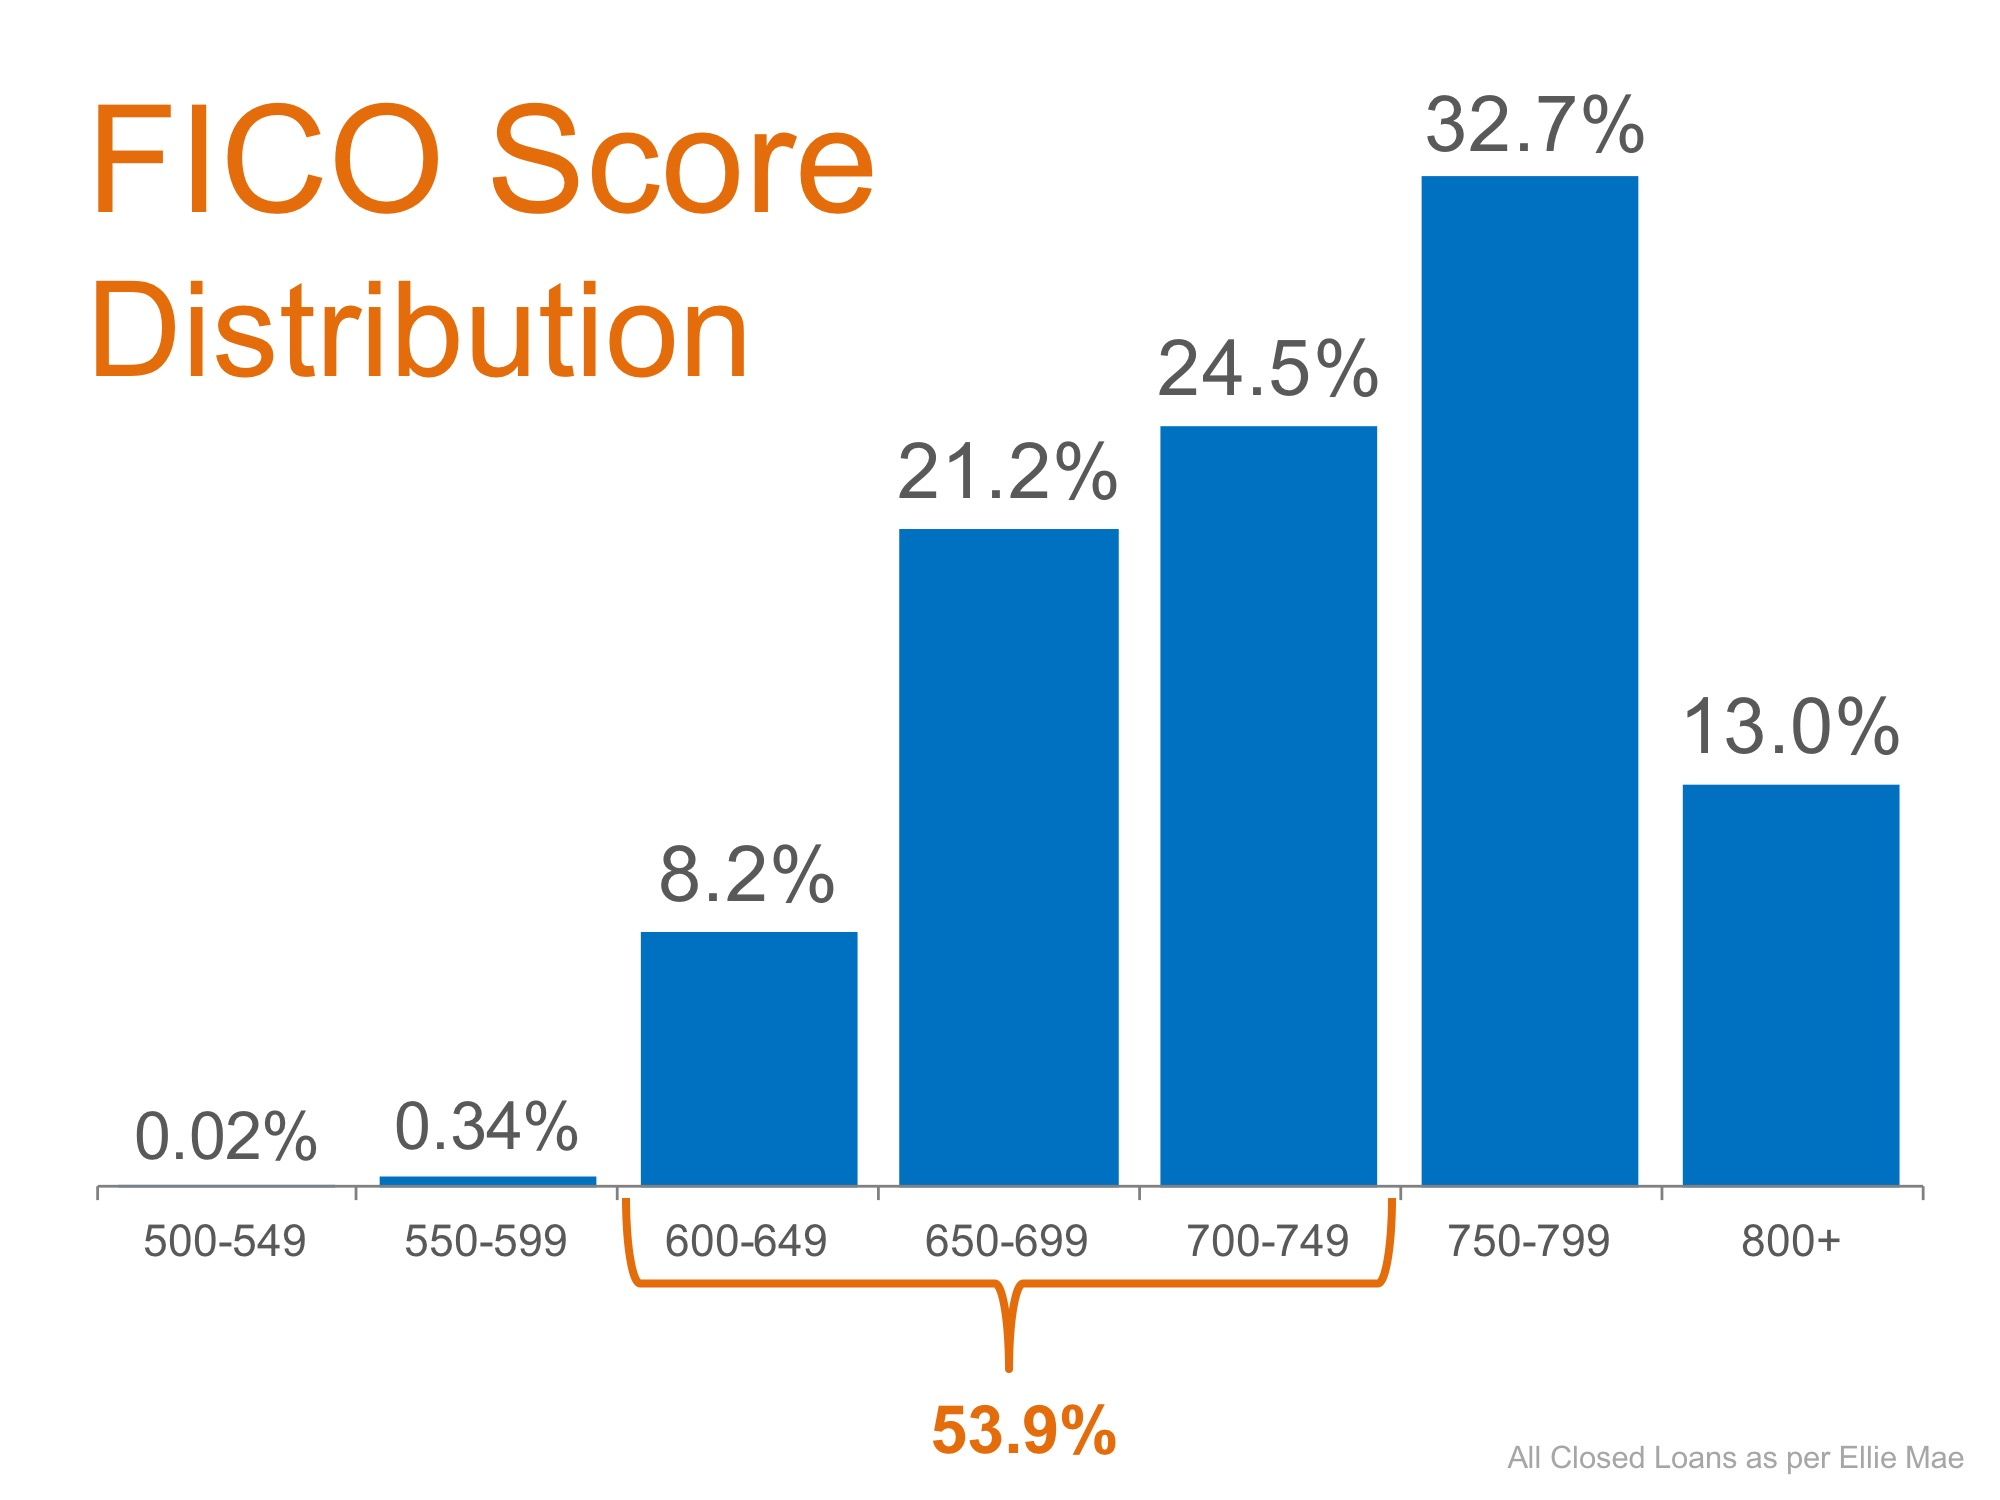 Don't Disqualify Yourself… Over Half of All Loans Approved Have a FICO Score Under 750   Simplifying The Market